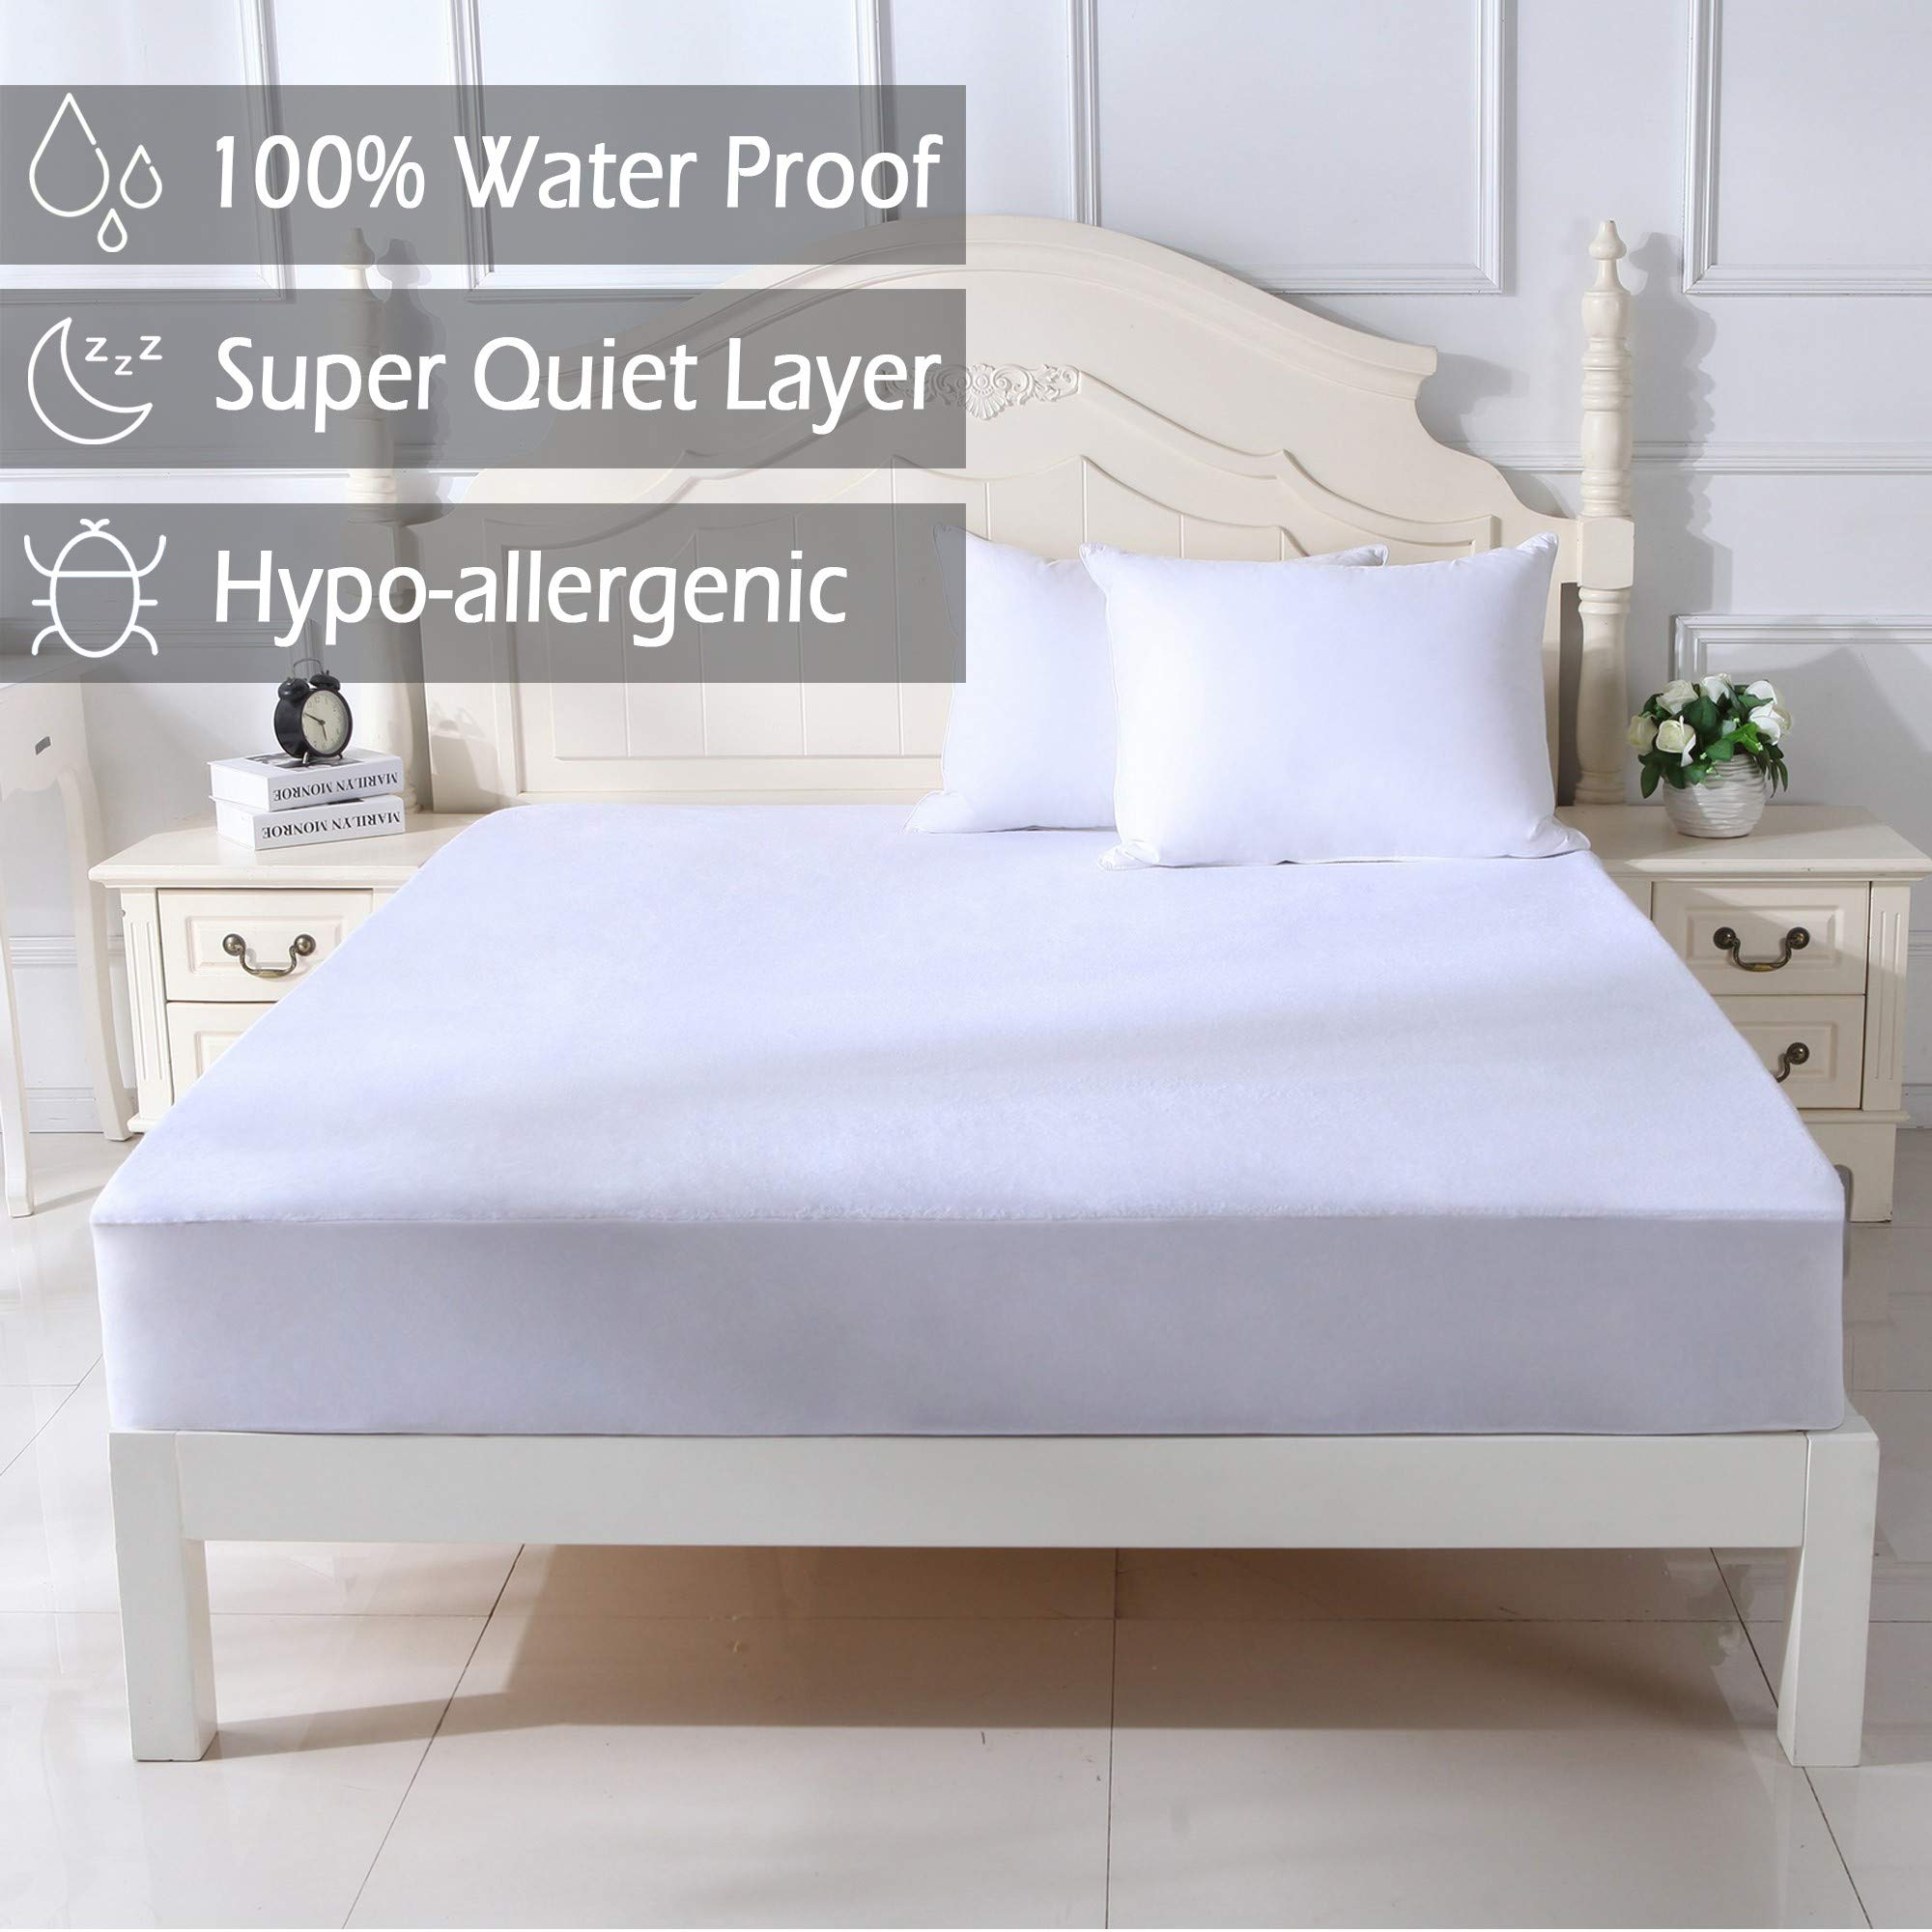 100% Waterproof Mattress Protector Cover with Dupont Durashield Breathable Cotton Rich To Protect Mattress From Stains Spills Dust Mites Allergens And Bacteria. Fit Up To 21 Inch Mattress. (Twin Size)